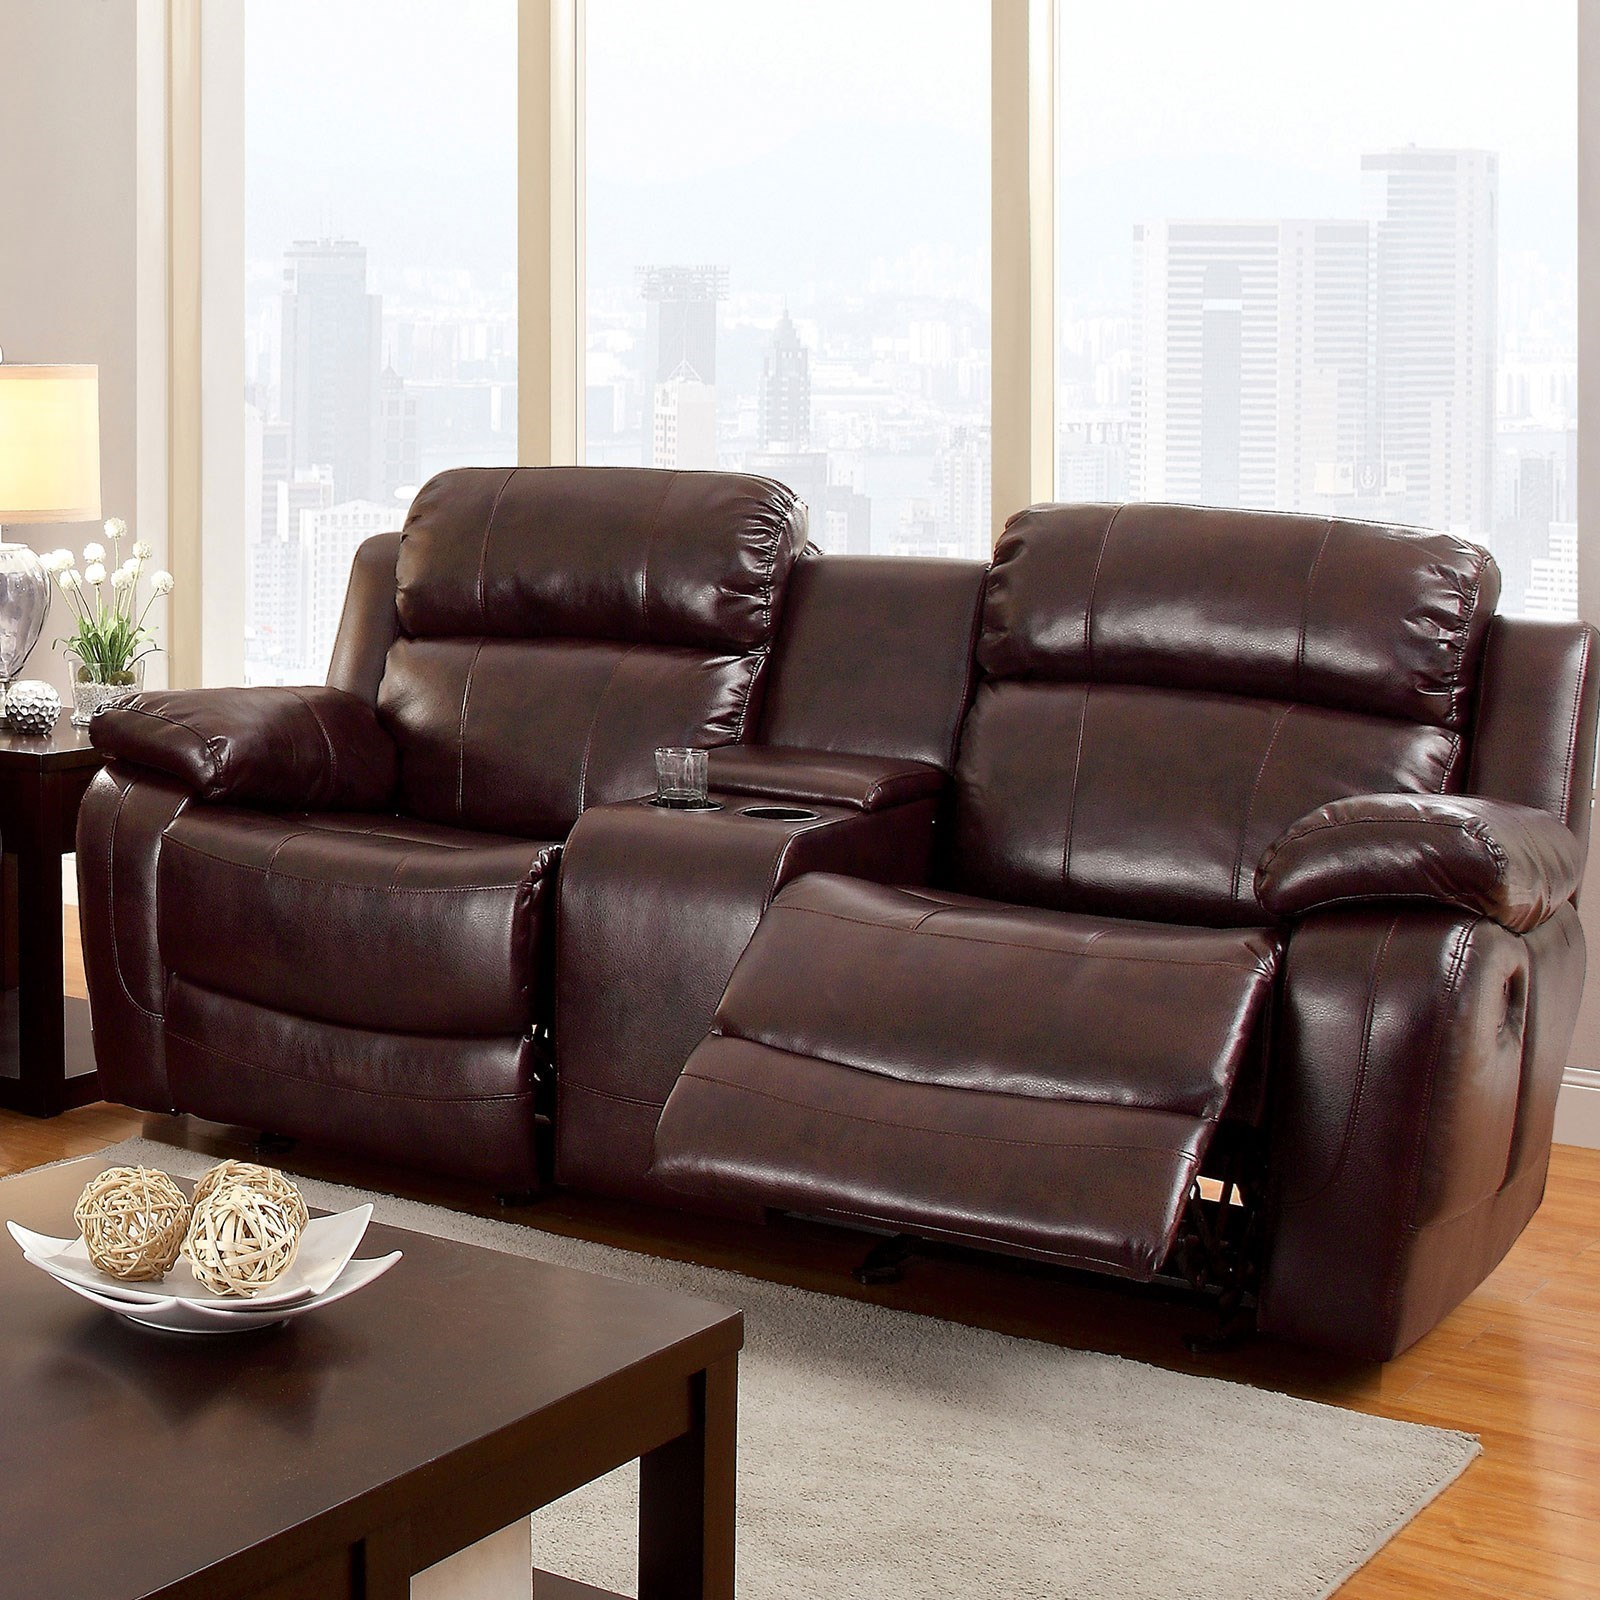 Super Hughes Reclining Loveseat With Center Console By Furniture Of America At Dream Home Interiors Caraccident5 Cool Chair Designs And Ideas Caraccident5Info